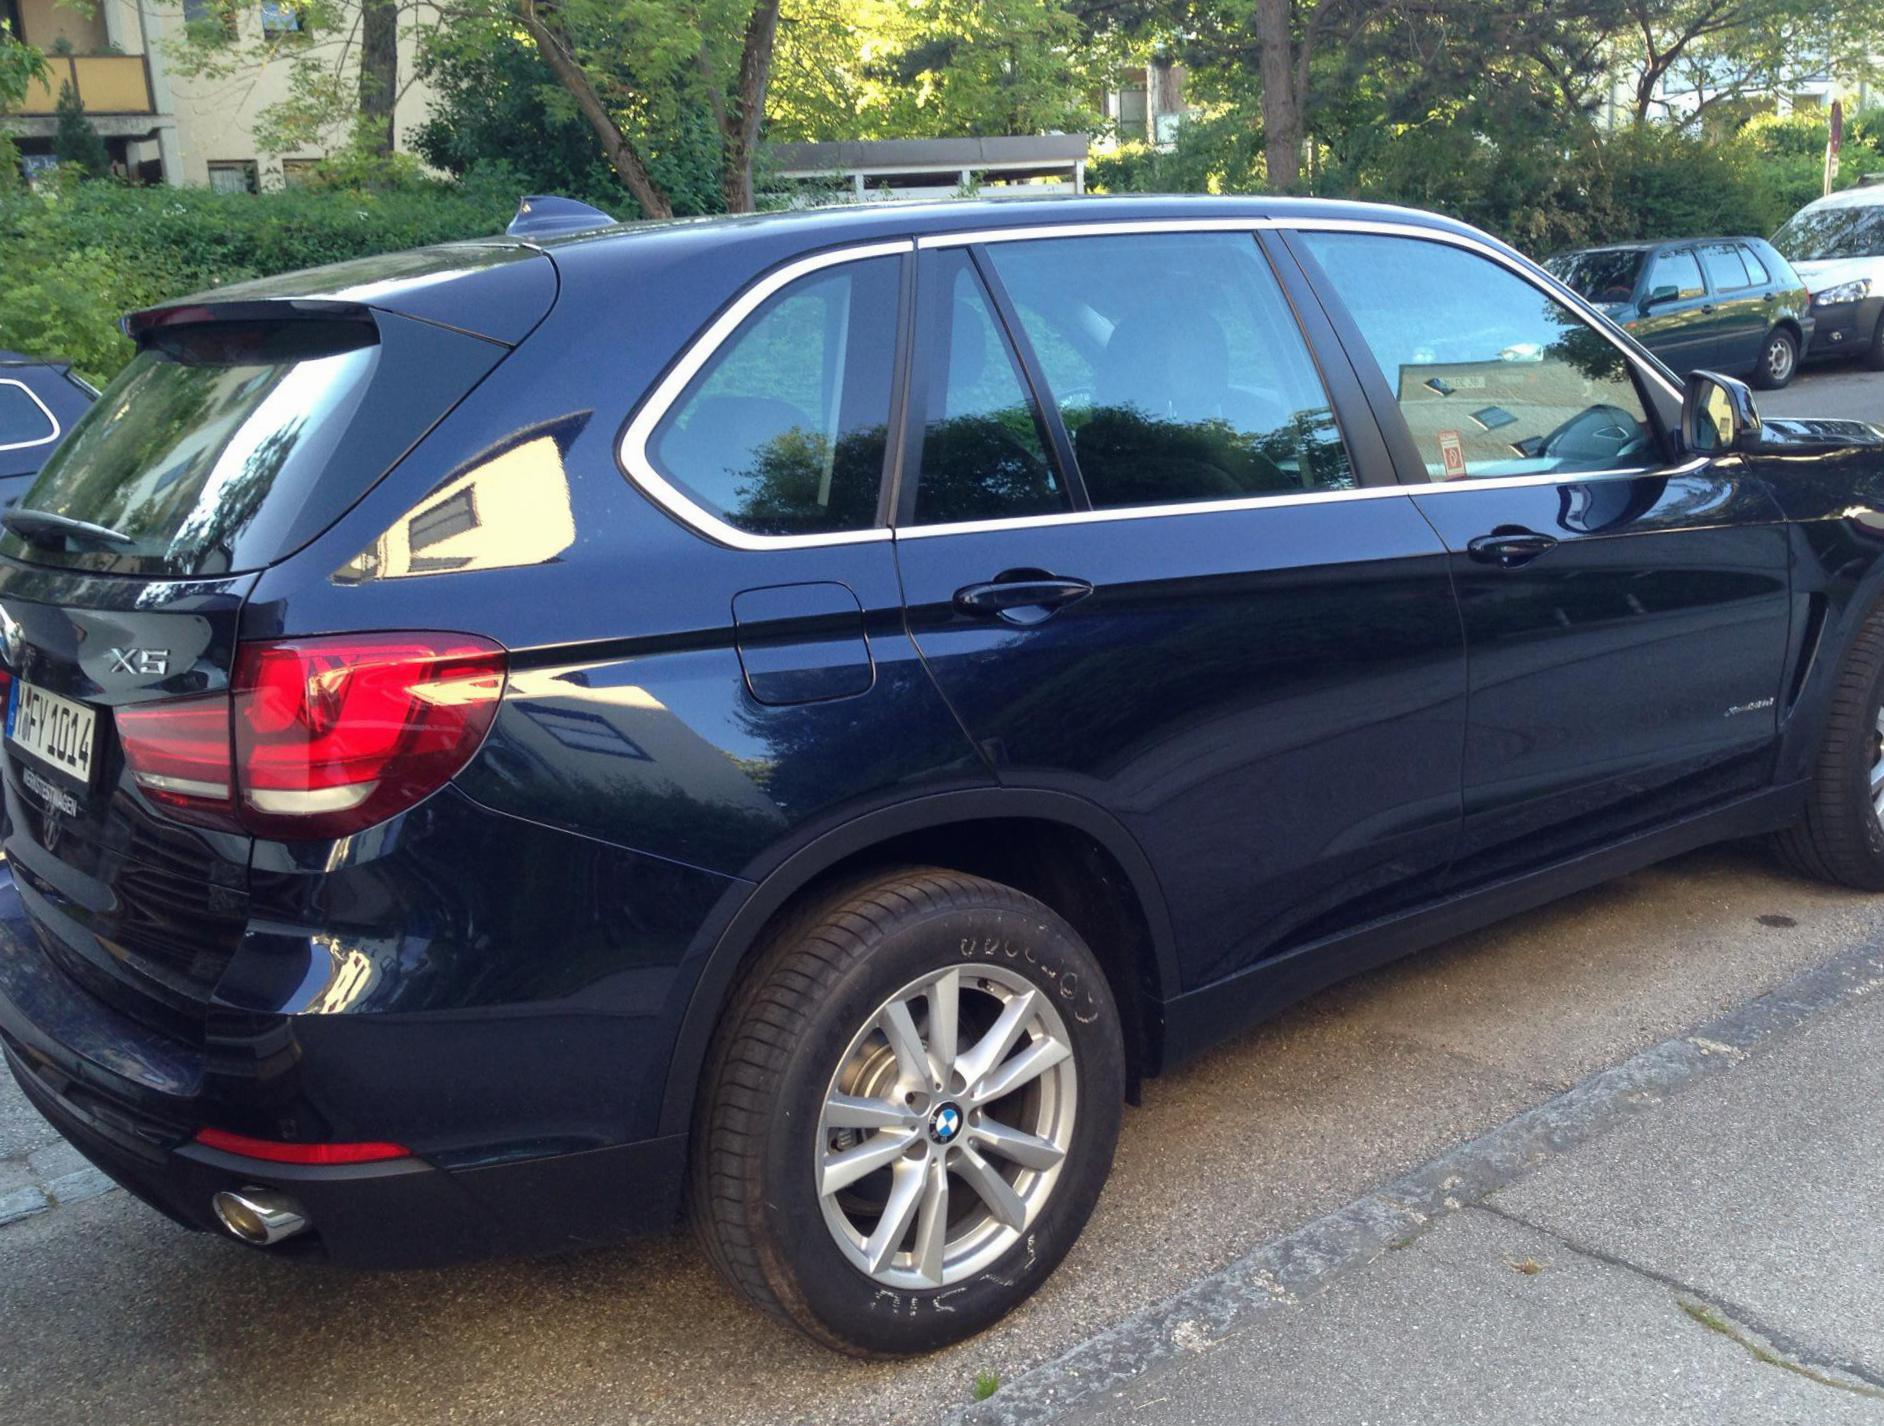 BMW X5 (F15) Specifications 2011